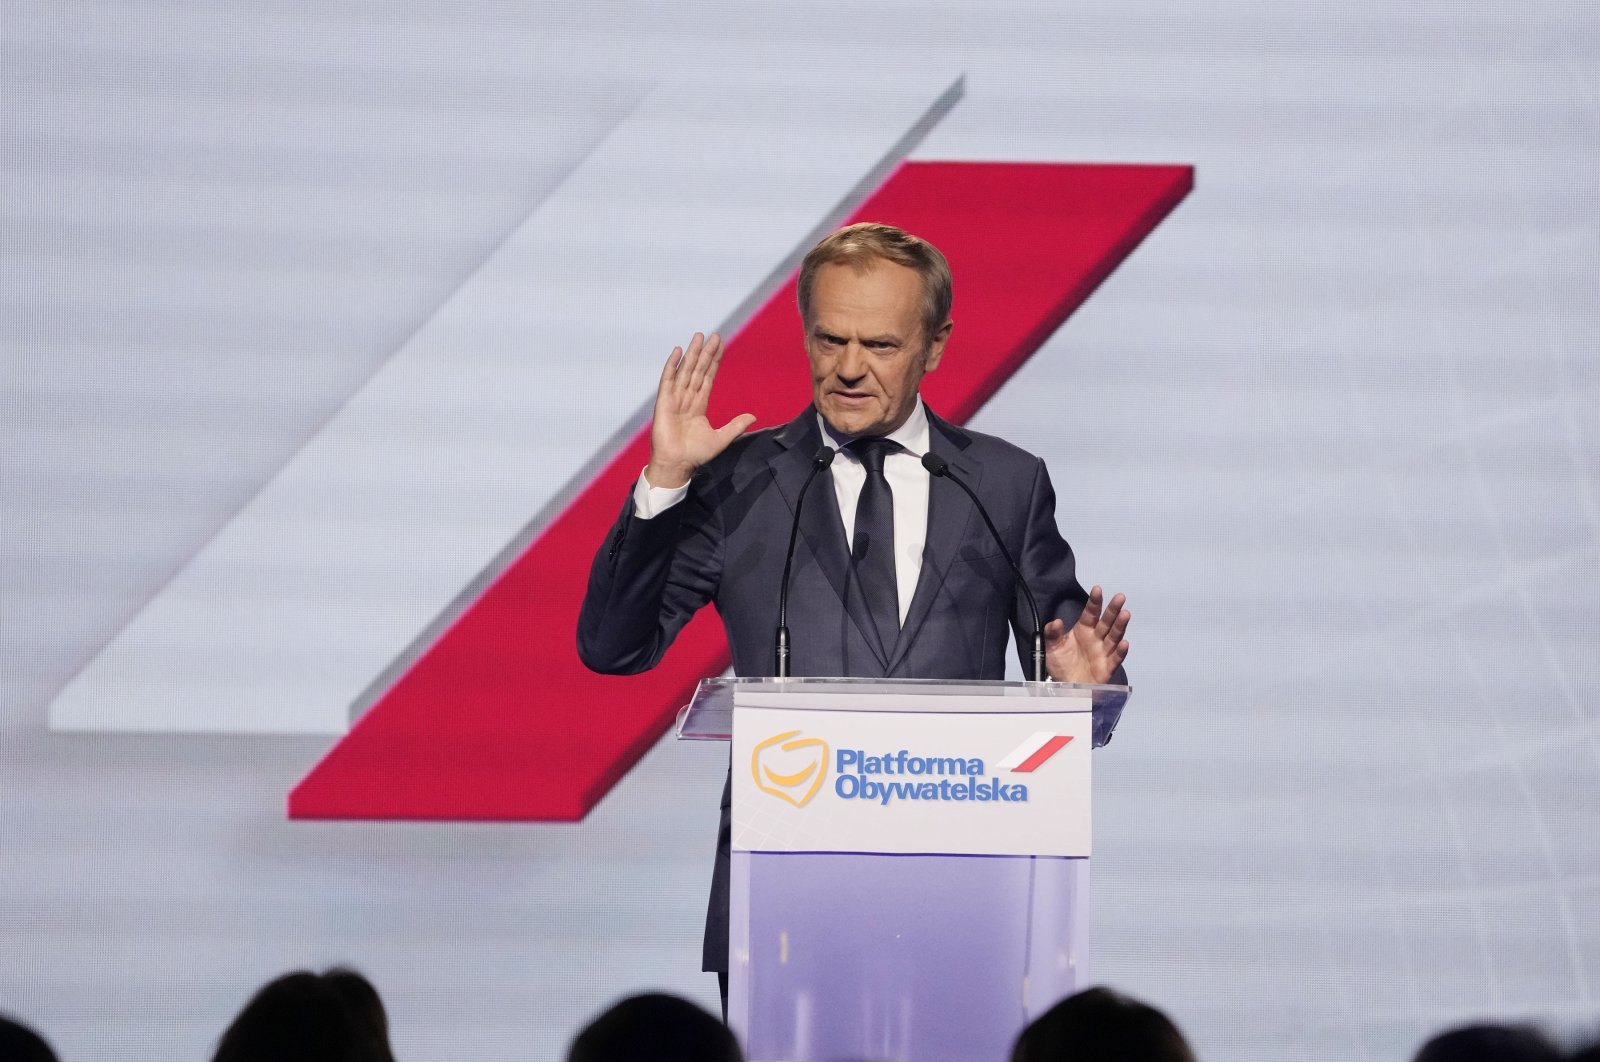 Former European Union leader and Poland's ex-prime minister, Donald Tusk, addresses a congress of Poland's opposition Civic Platform party, in Warsaw, Poland, July 3, 2021.(AP Photo)